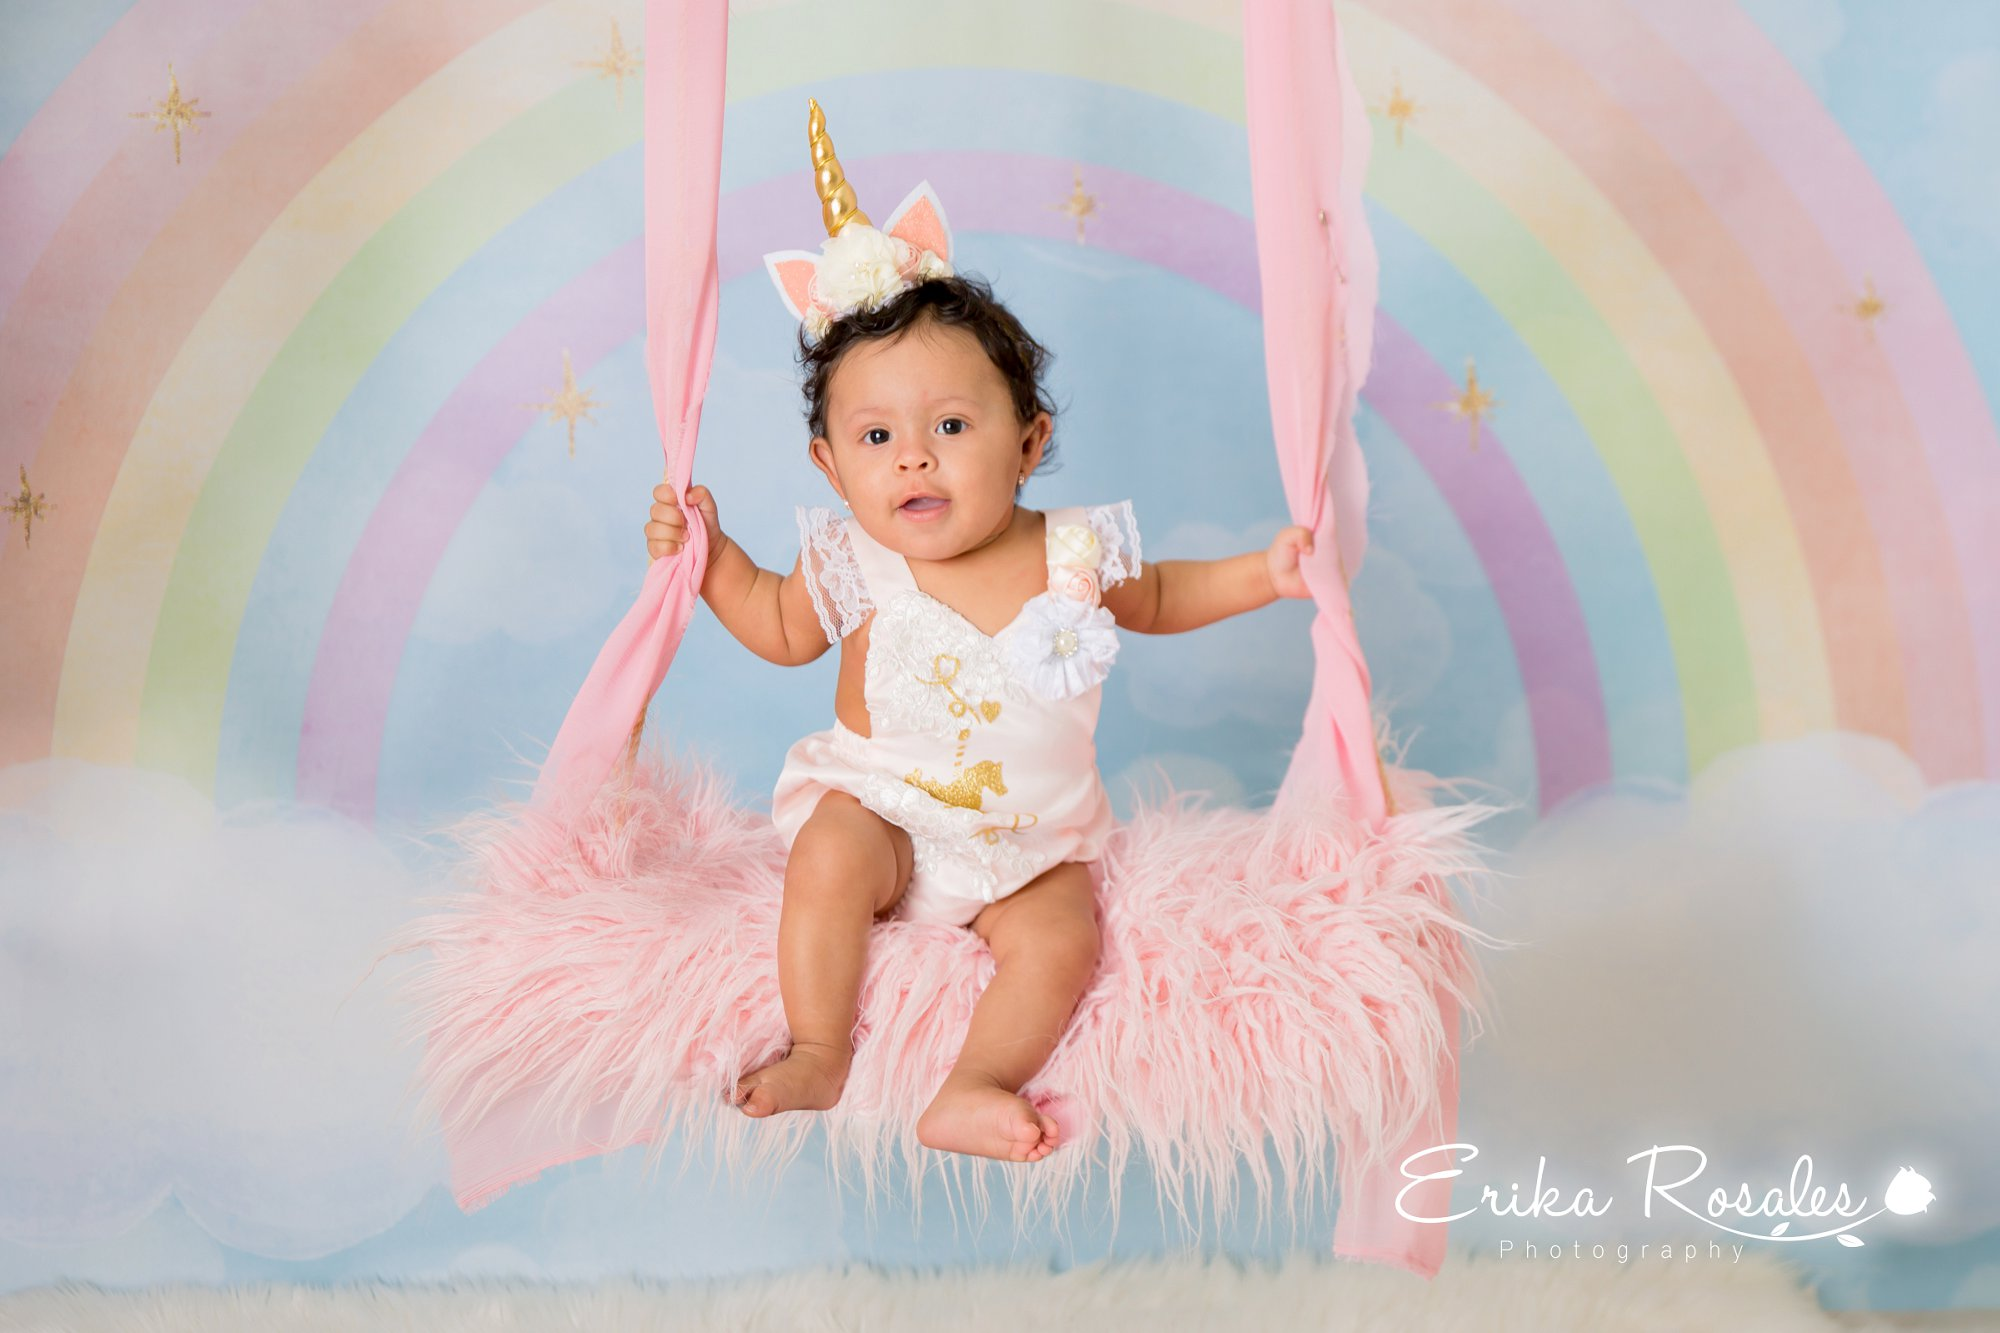 Baby girl 7 month old studio photo session unicorn photo session